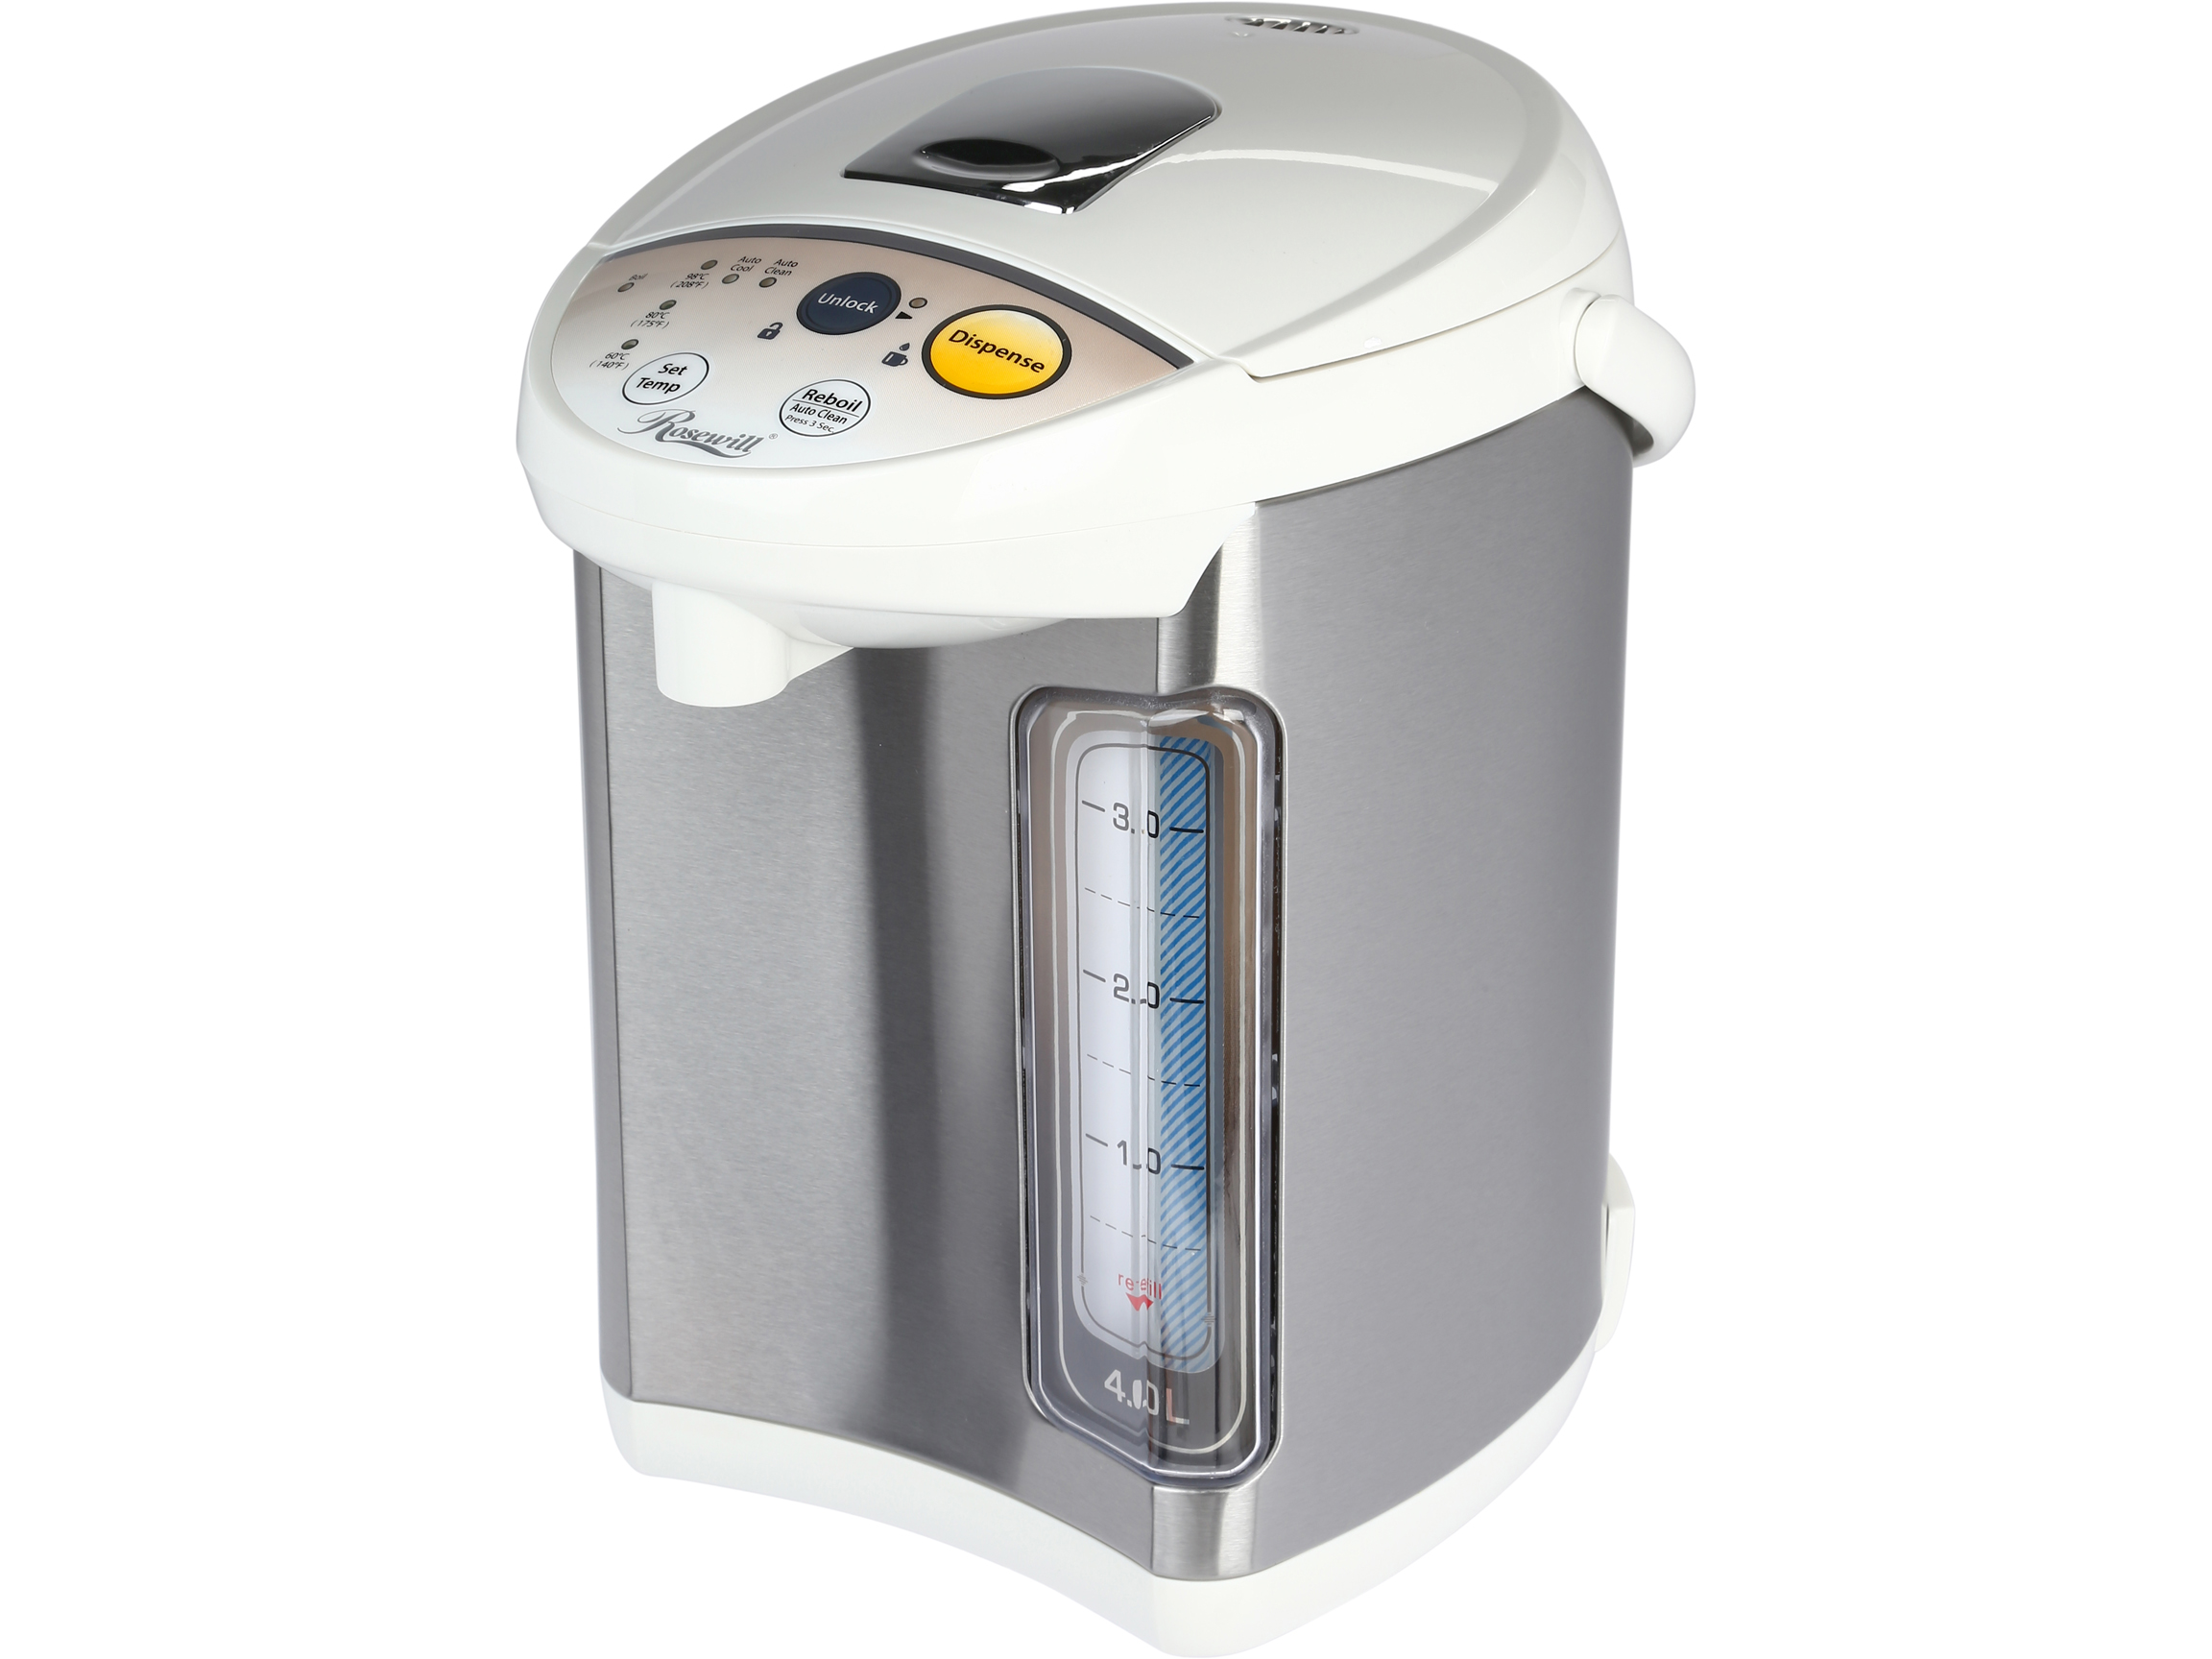 Rosewill Electric Hot Water Boiler and Warmer Hot Water Dispenser 4 ...